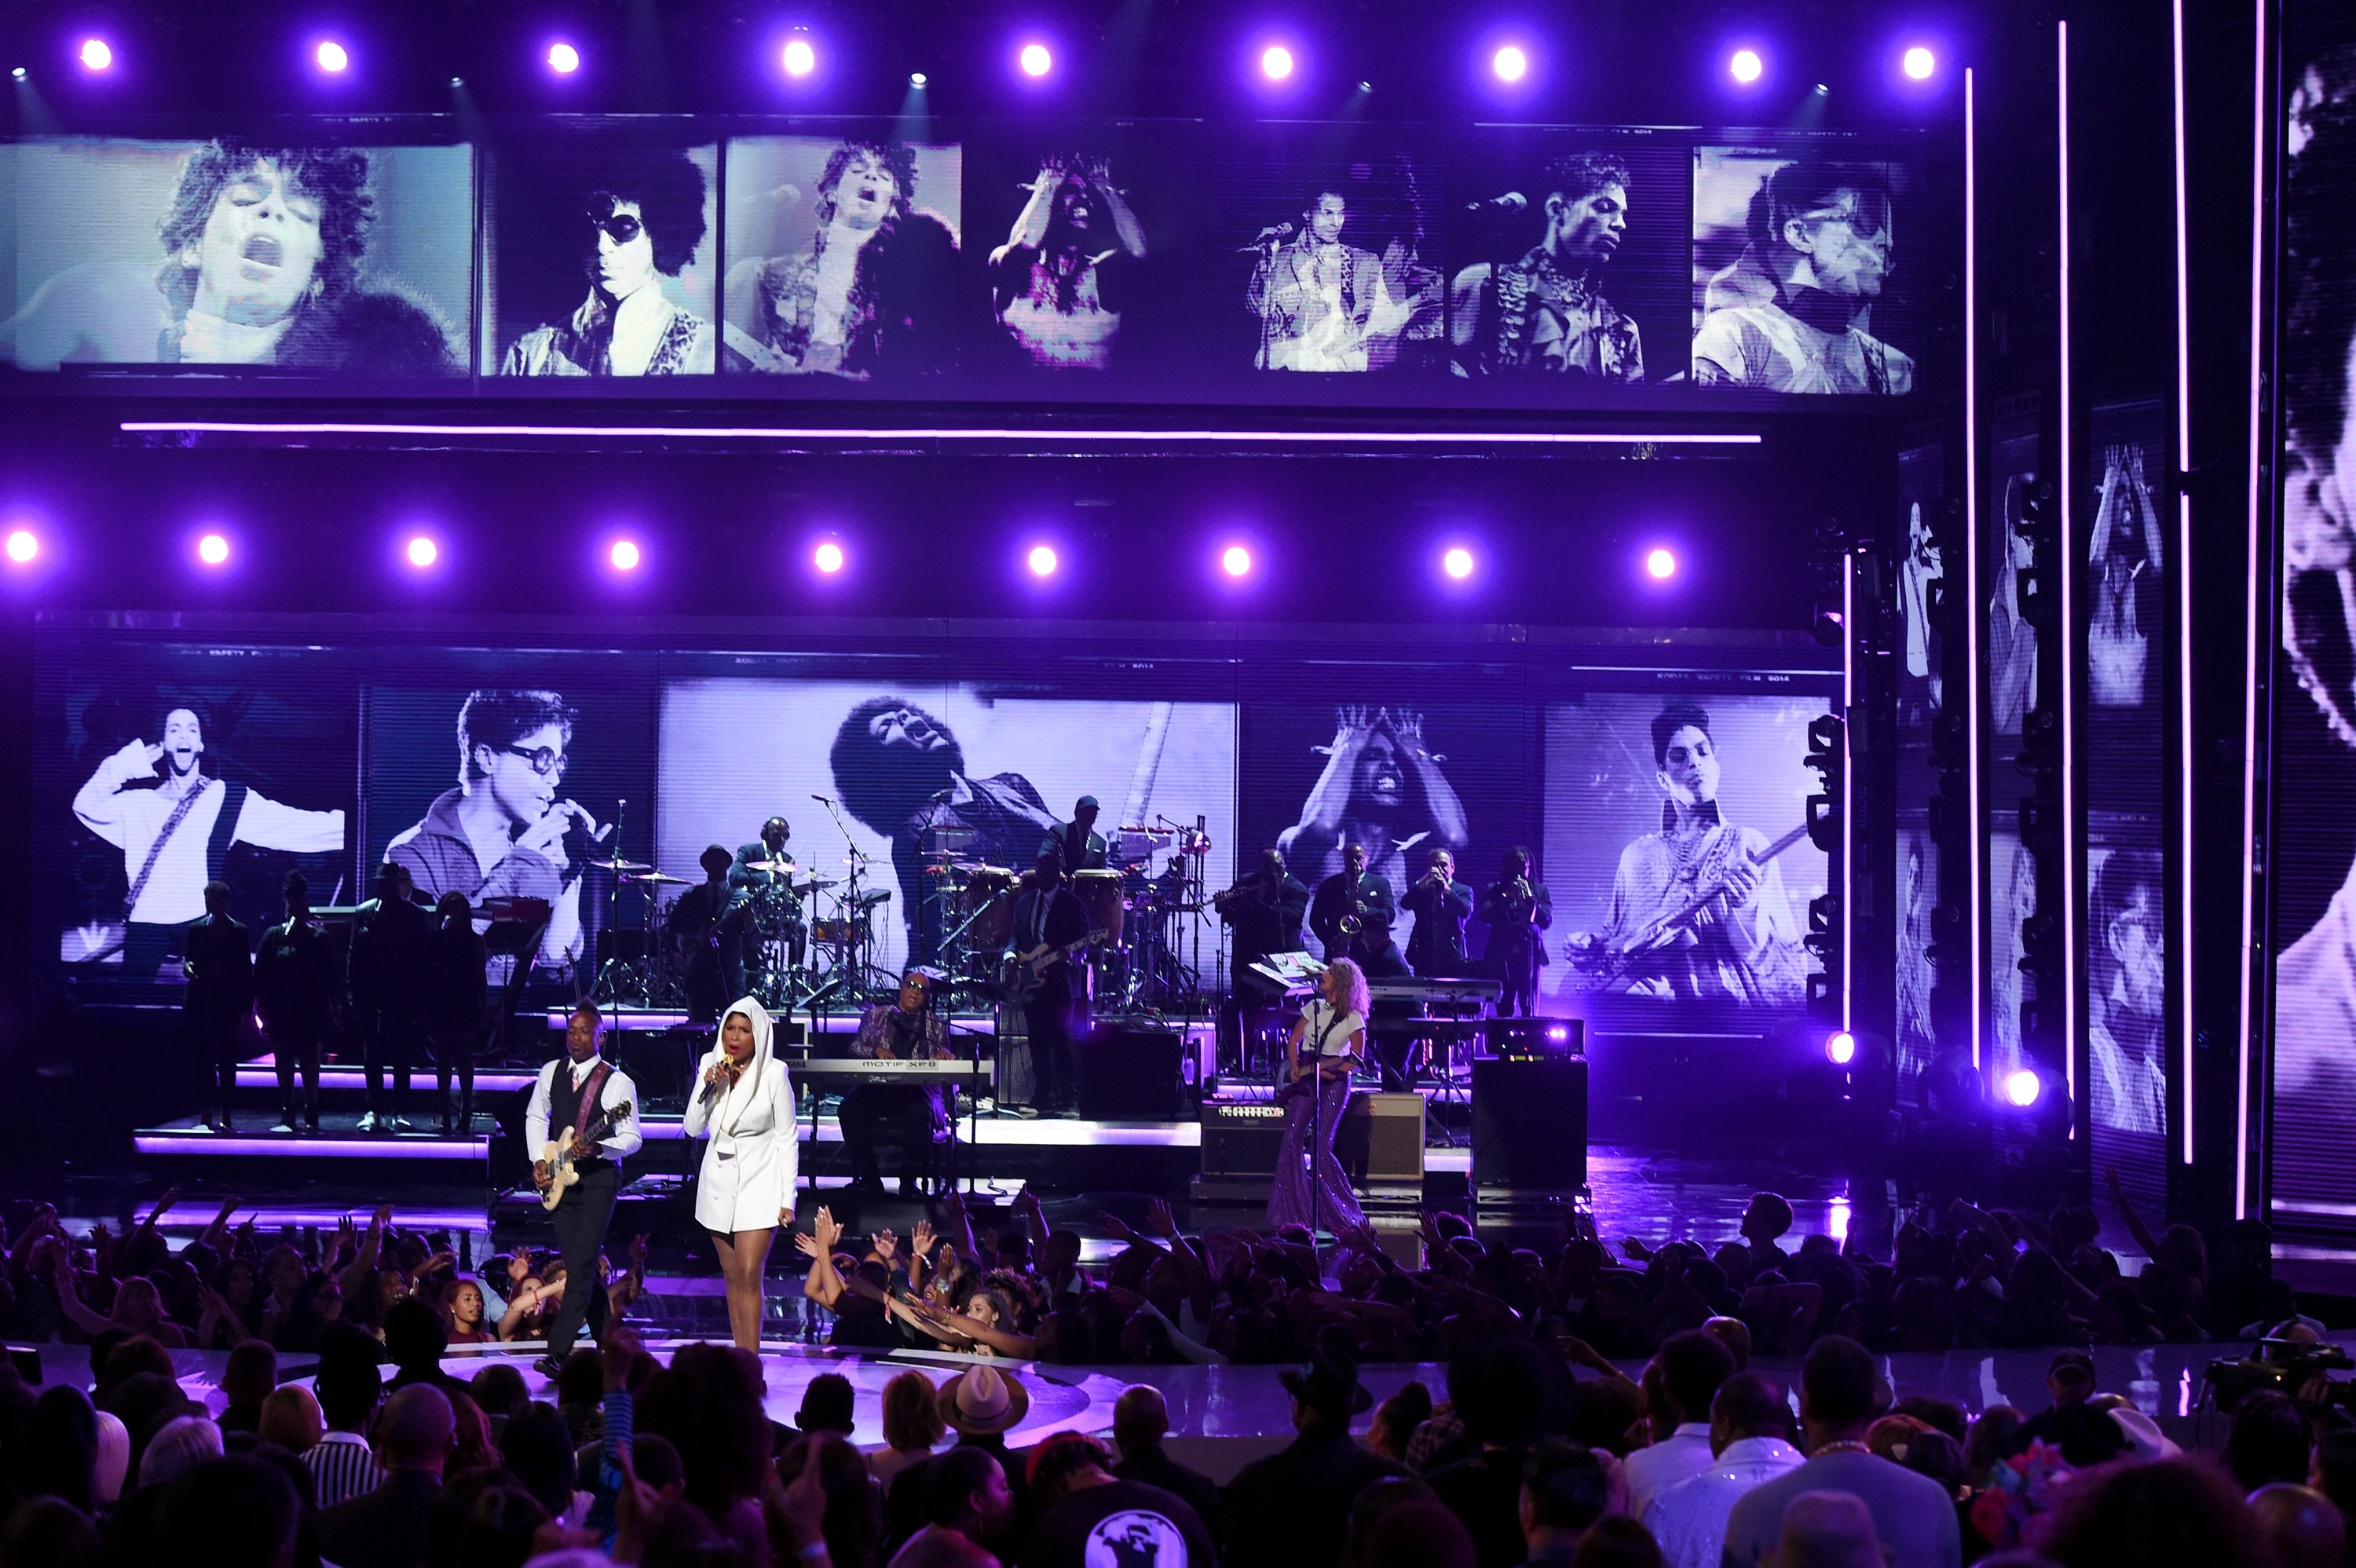 Captain Kirk Douglas of music group The Roots, Jennifer Hudson, Stevie Wonder and Tori Kelly perform onstage during the 2016 BET Awards at the Microsoft Theater in Los Angeles on June 26, 2016.